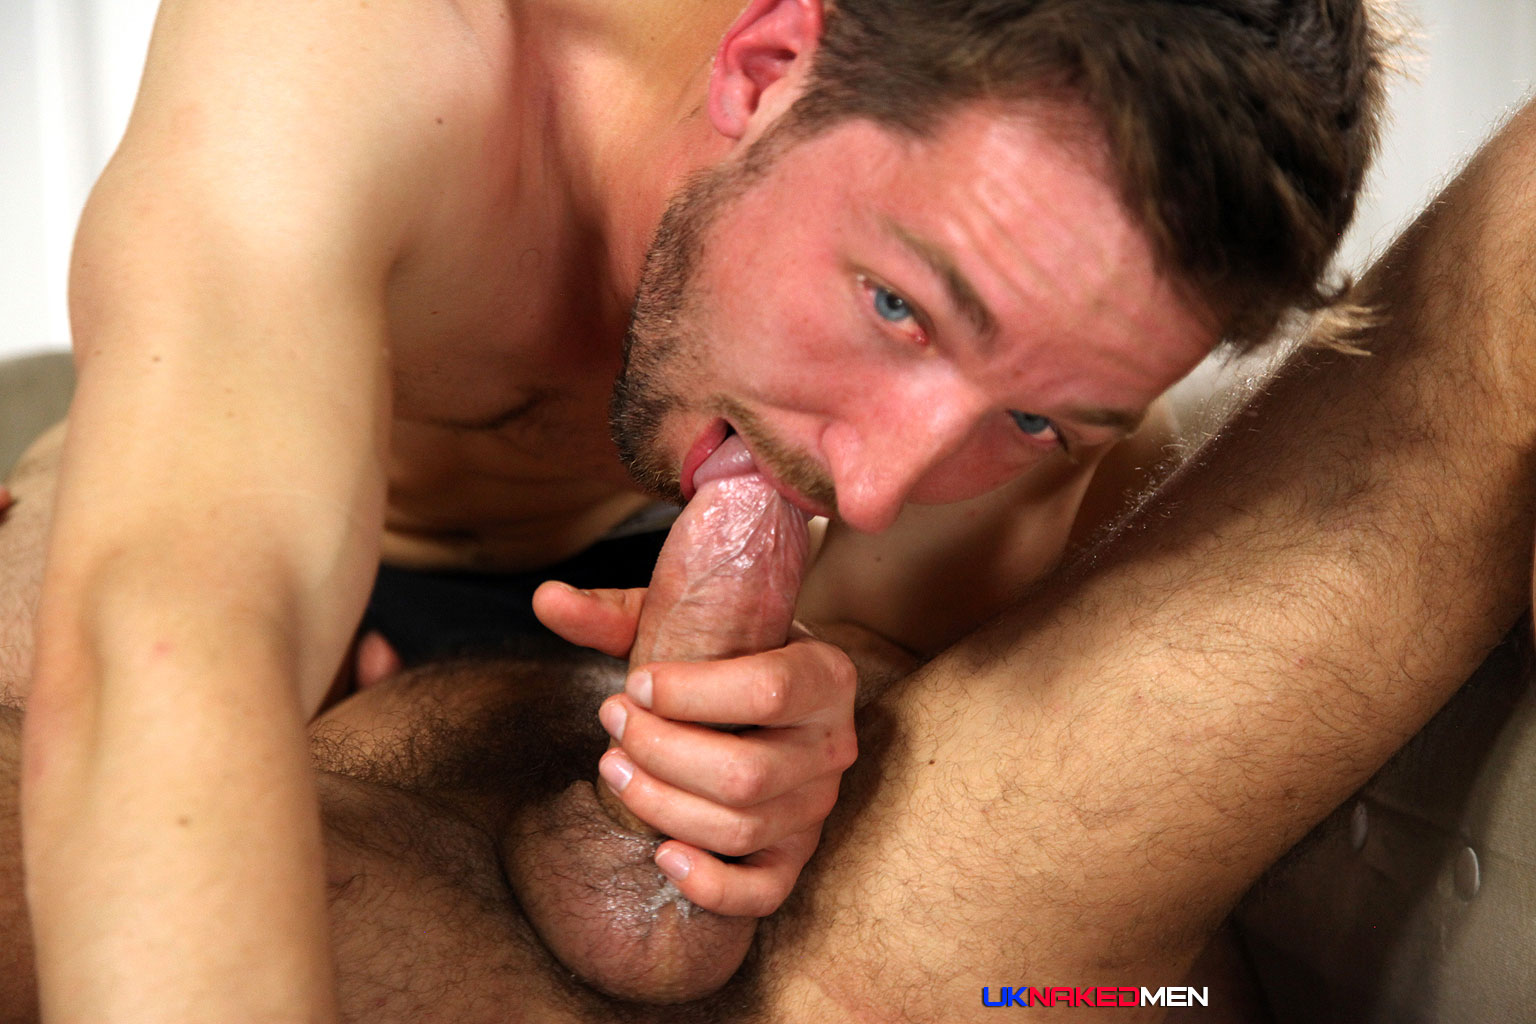 UK-Naked-Men-Antionio-Garcia-and-Jason-Stark-and-Valentin-Alsina-Huge-Cock-Fucking-Amateur-Gay-Porn-05 Peeping Tom Watches Two Masculine Uncut Guys Fucking